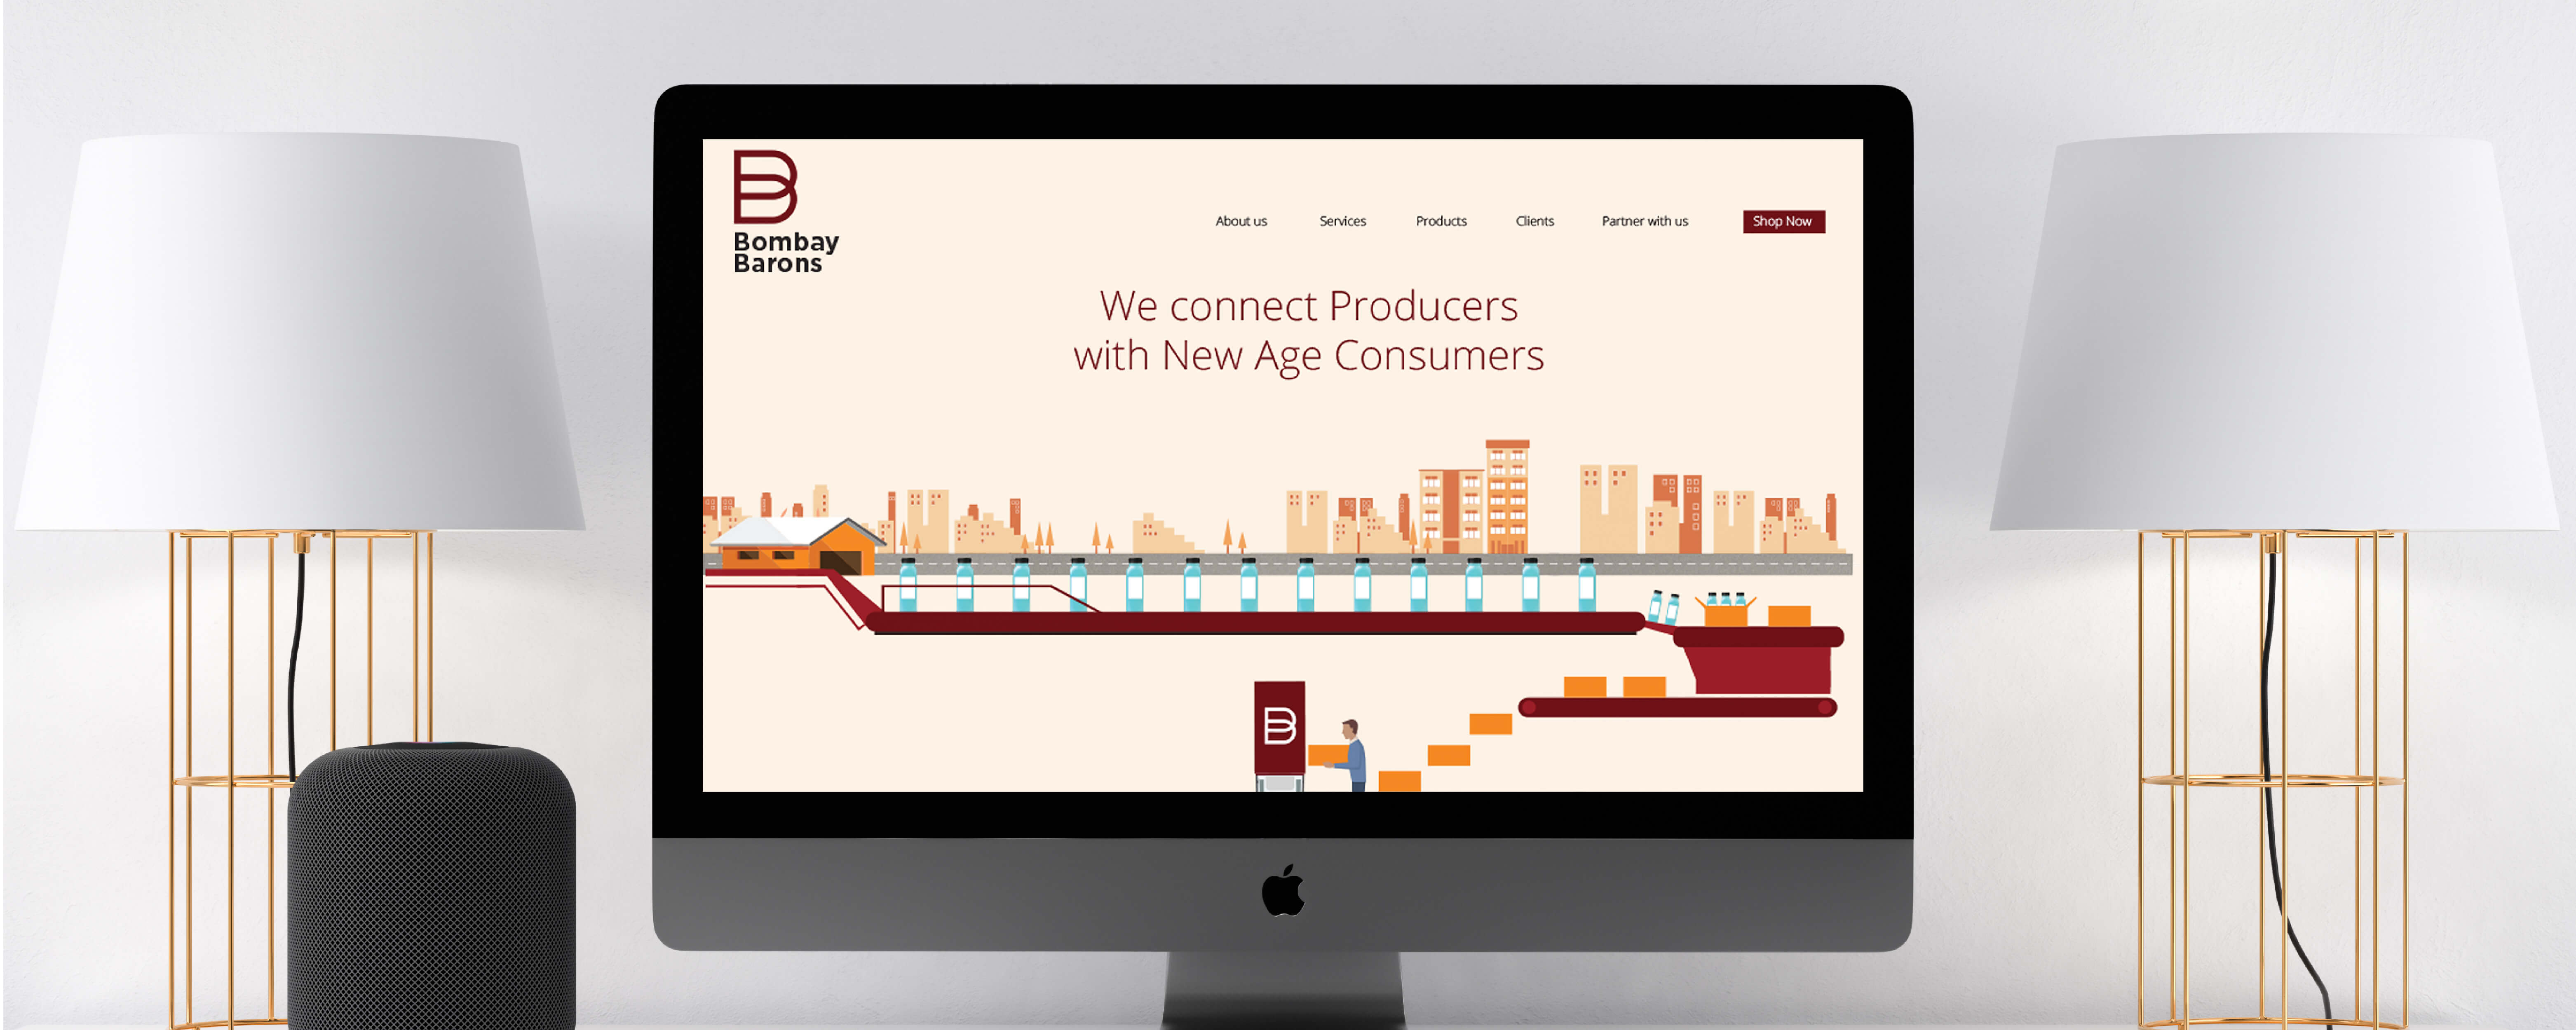 BOMBAY_BARONS_Project page_IdeaSpice website-09 (1)